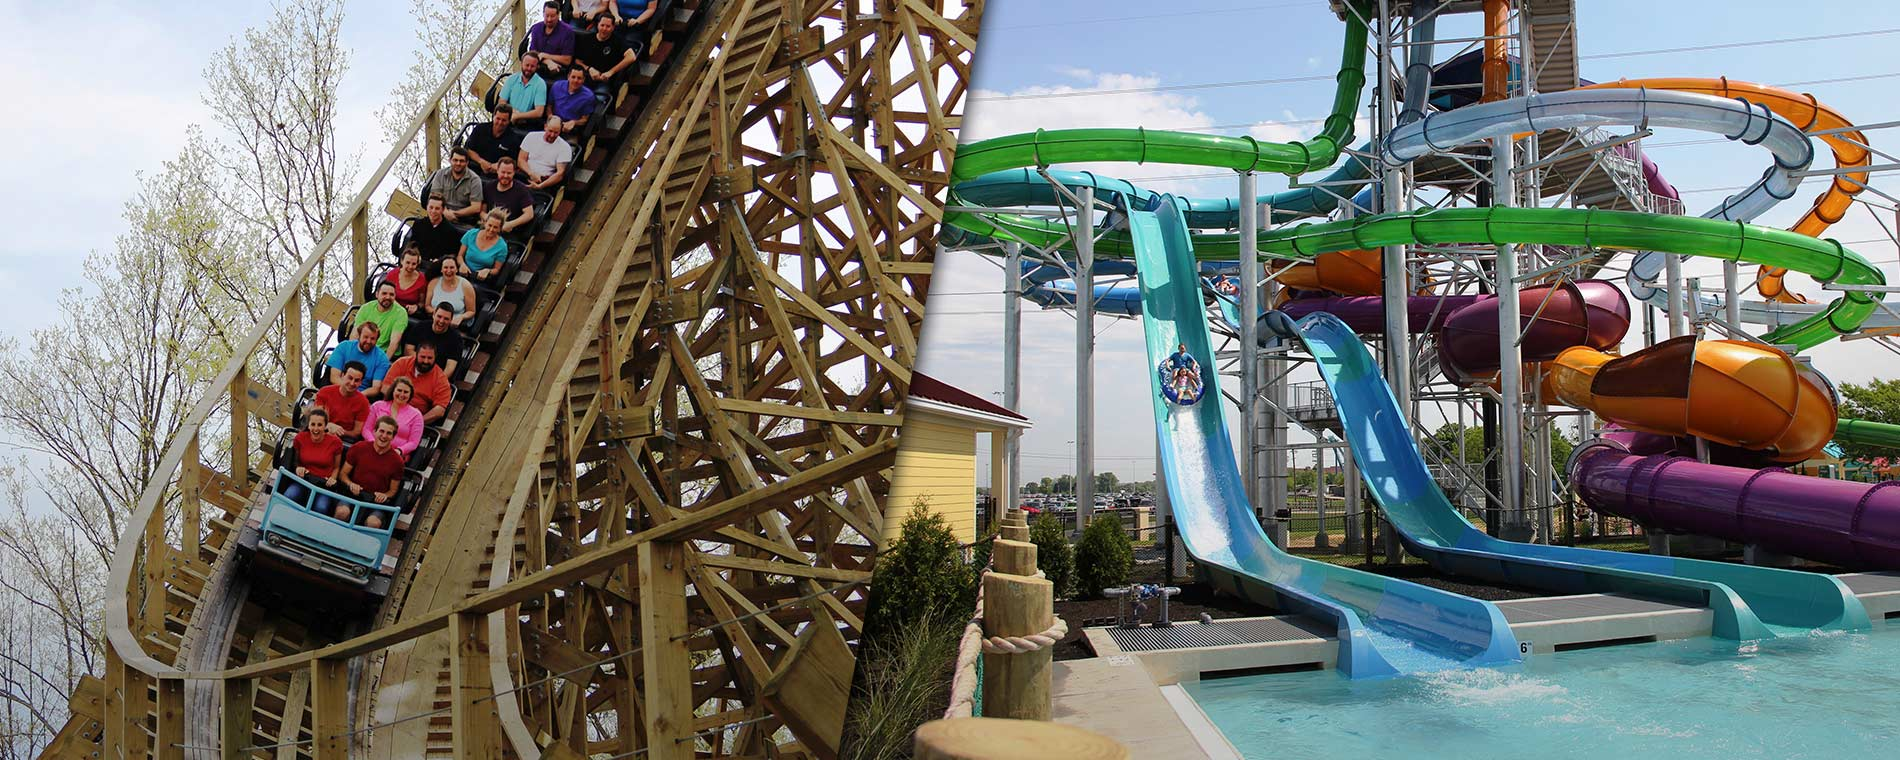 Soak City included in admission to Kings Island